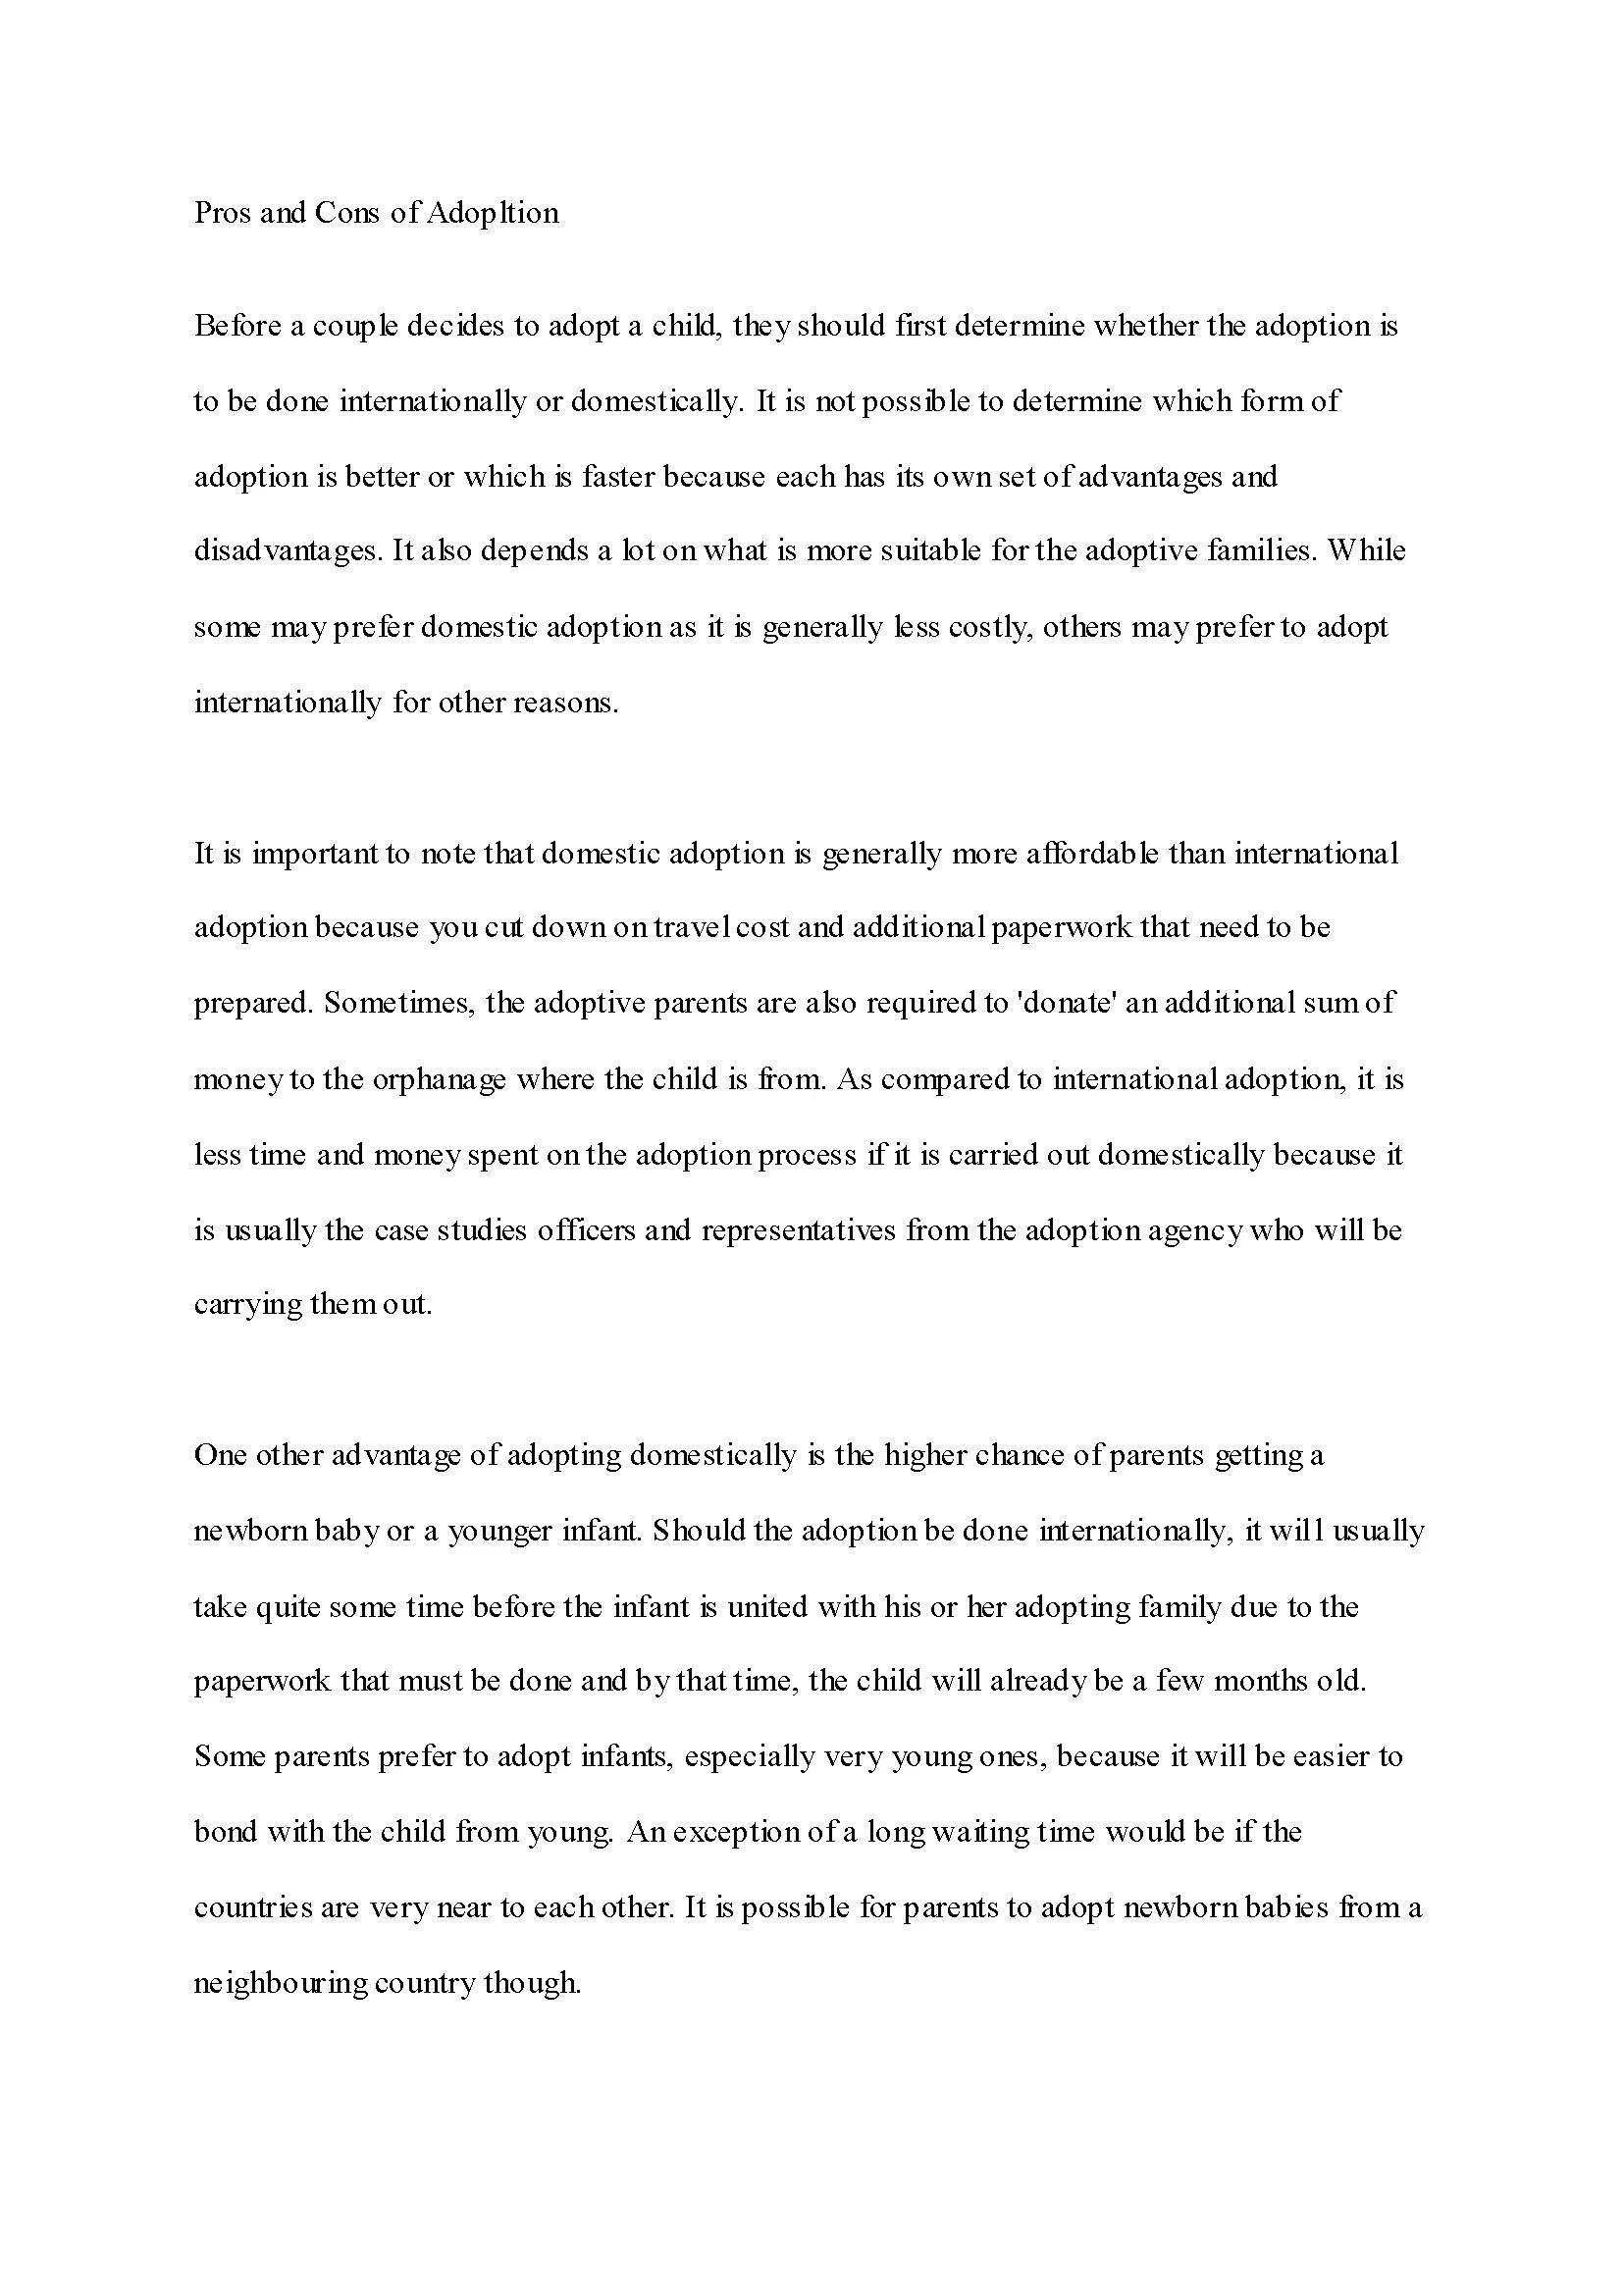 004 Amazing Compare And Contrast Essay Example College High Def  Topic For Student ComparisonFull